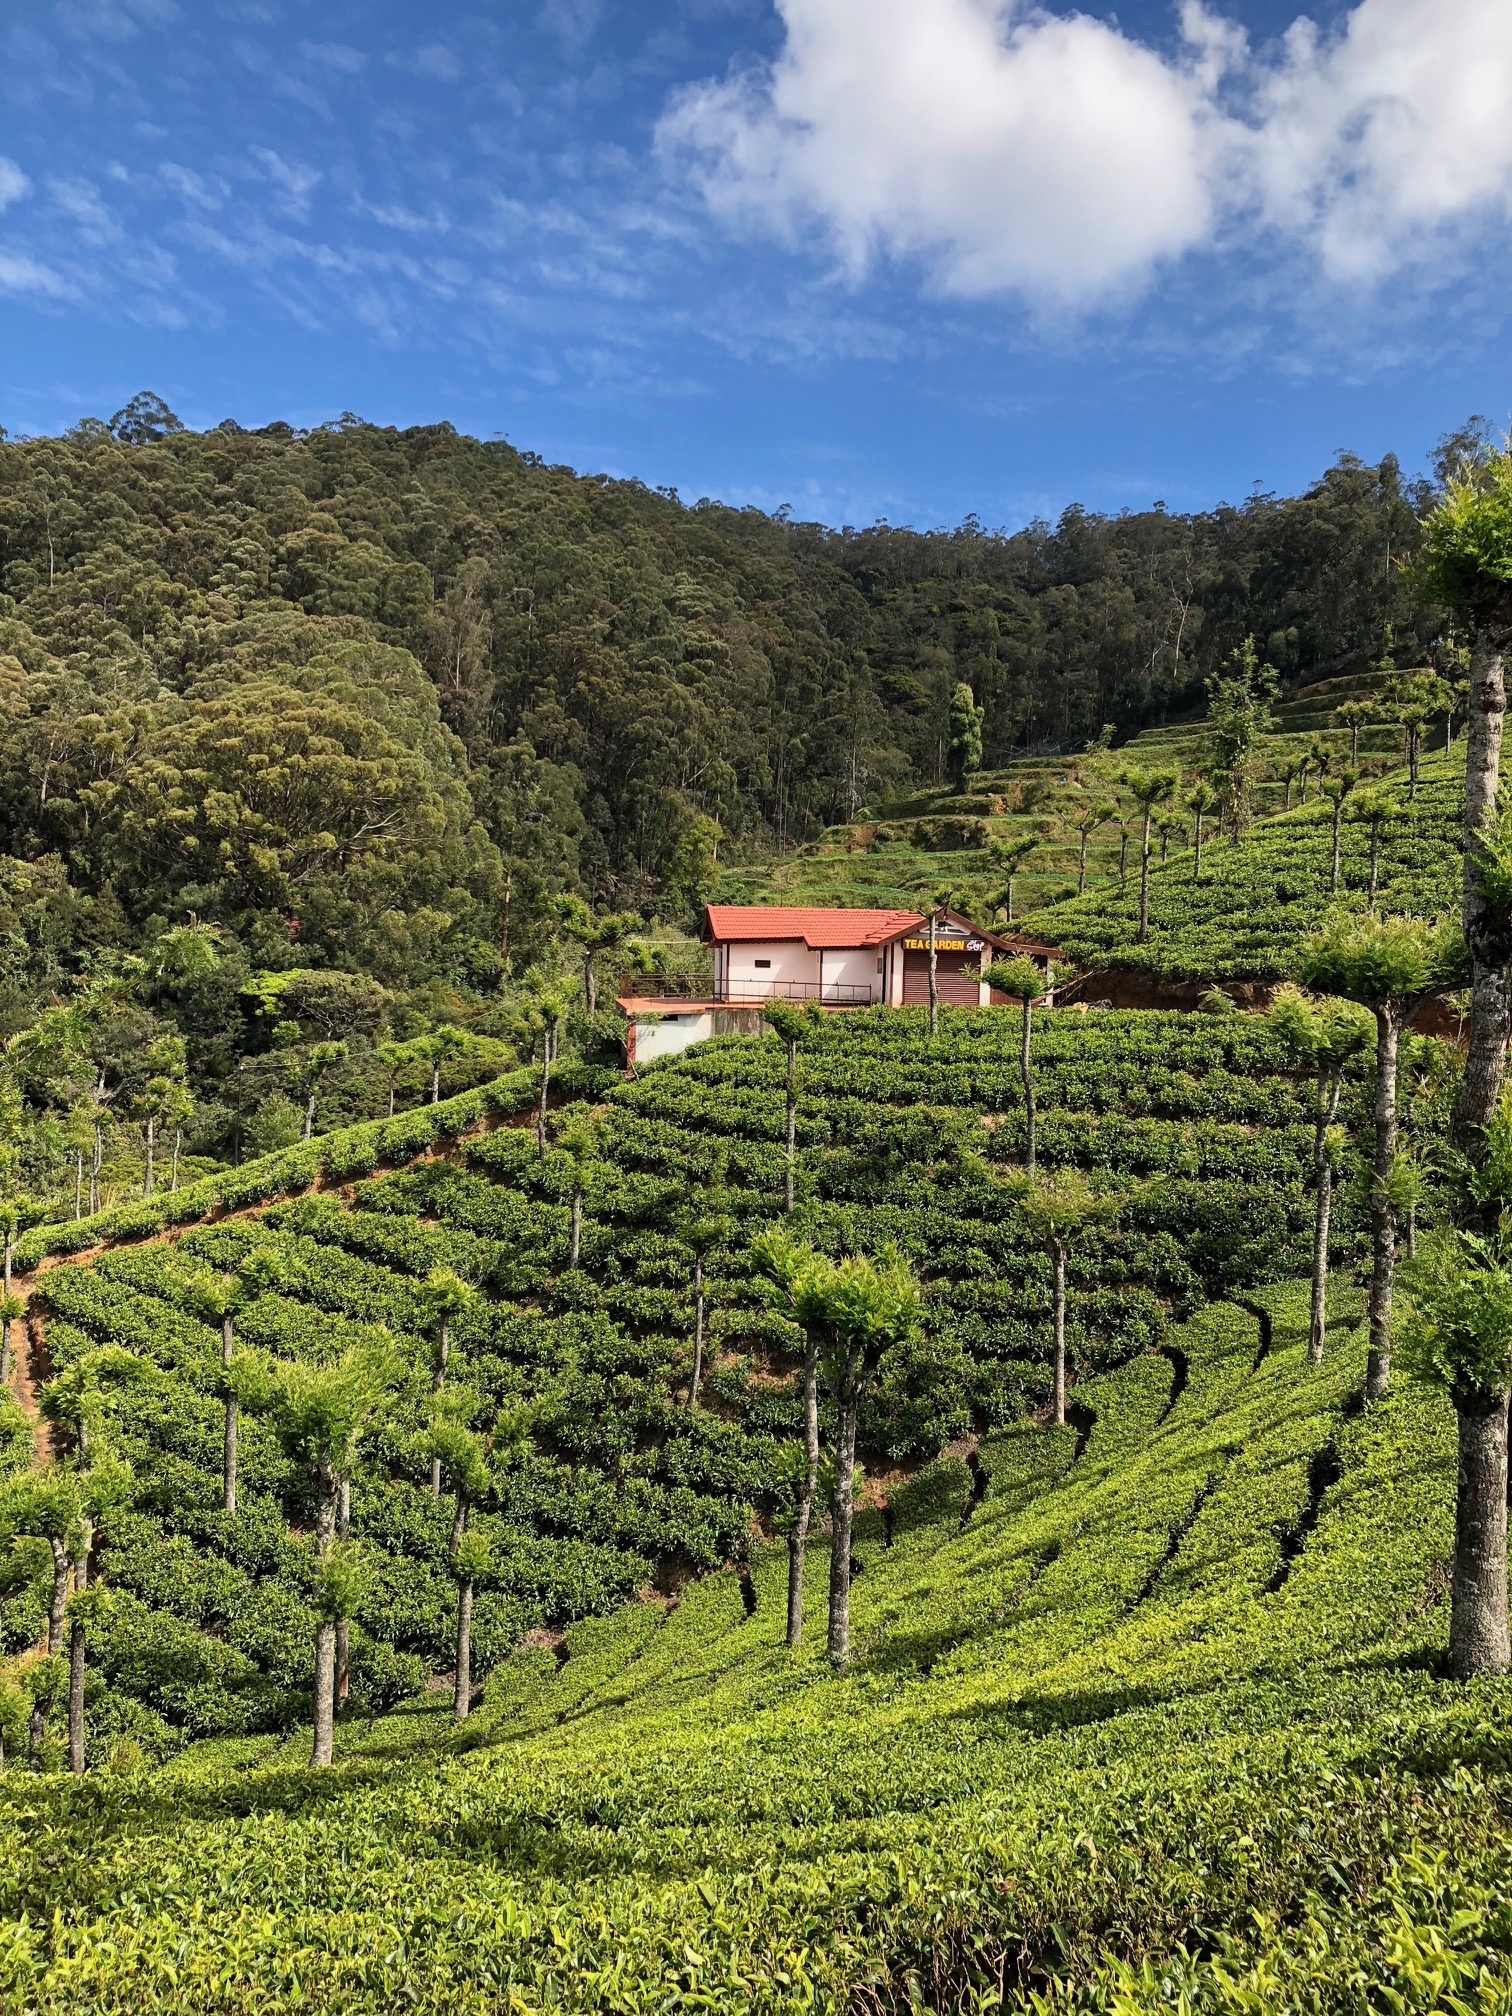 Rows and rows of short plants cover a hillside with a tea garden, surrounded by trees.